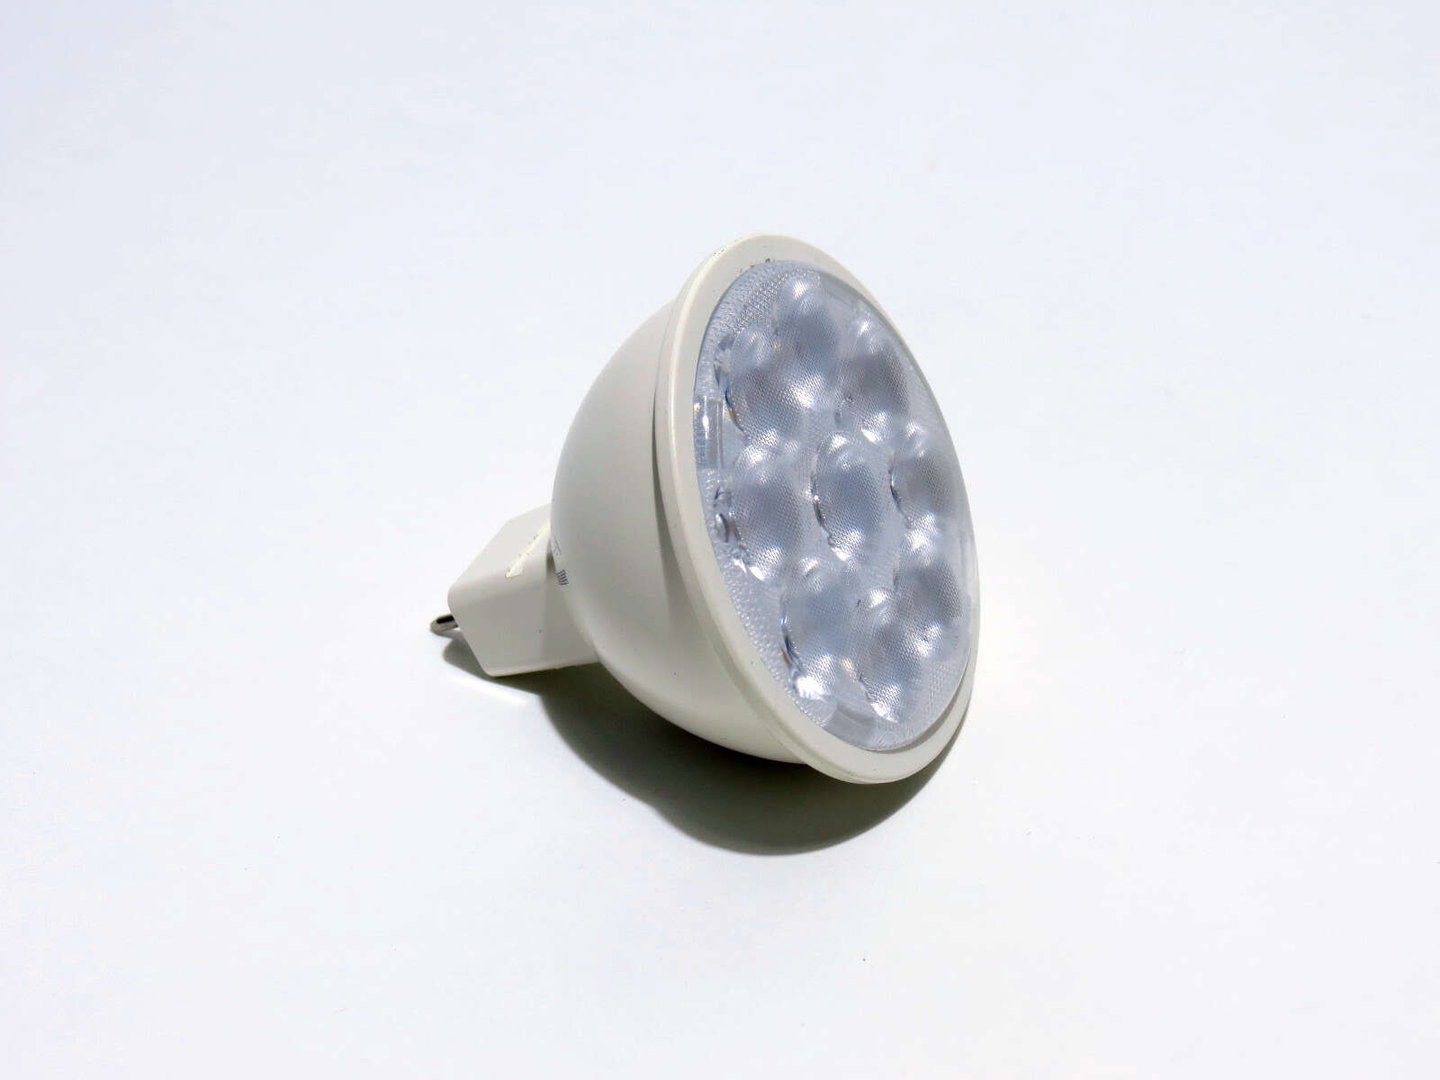 MR16 GU5.3 Eco Power-LED 12V 5W 36° 350L warmweiß